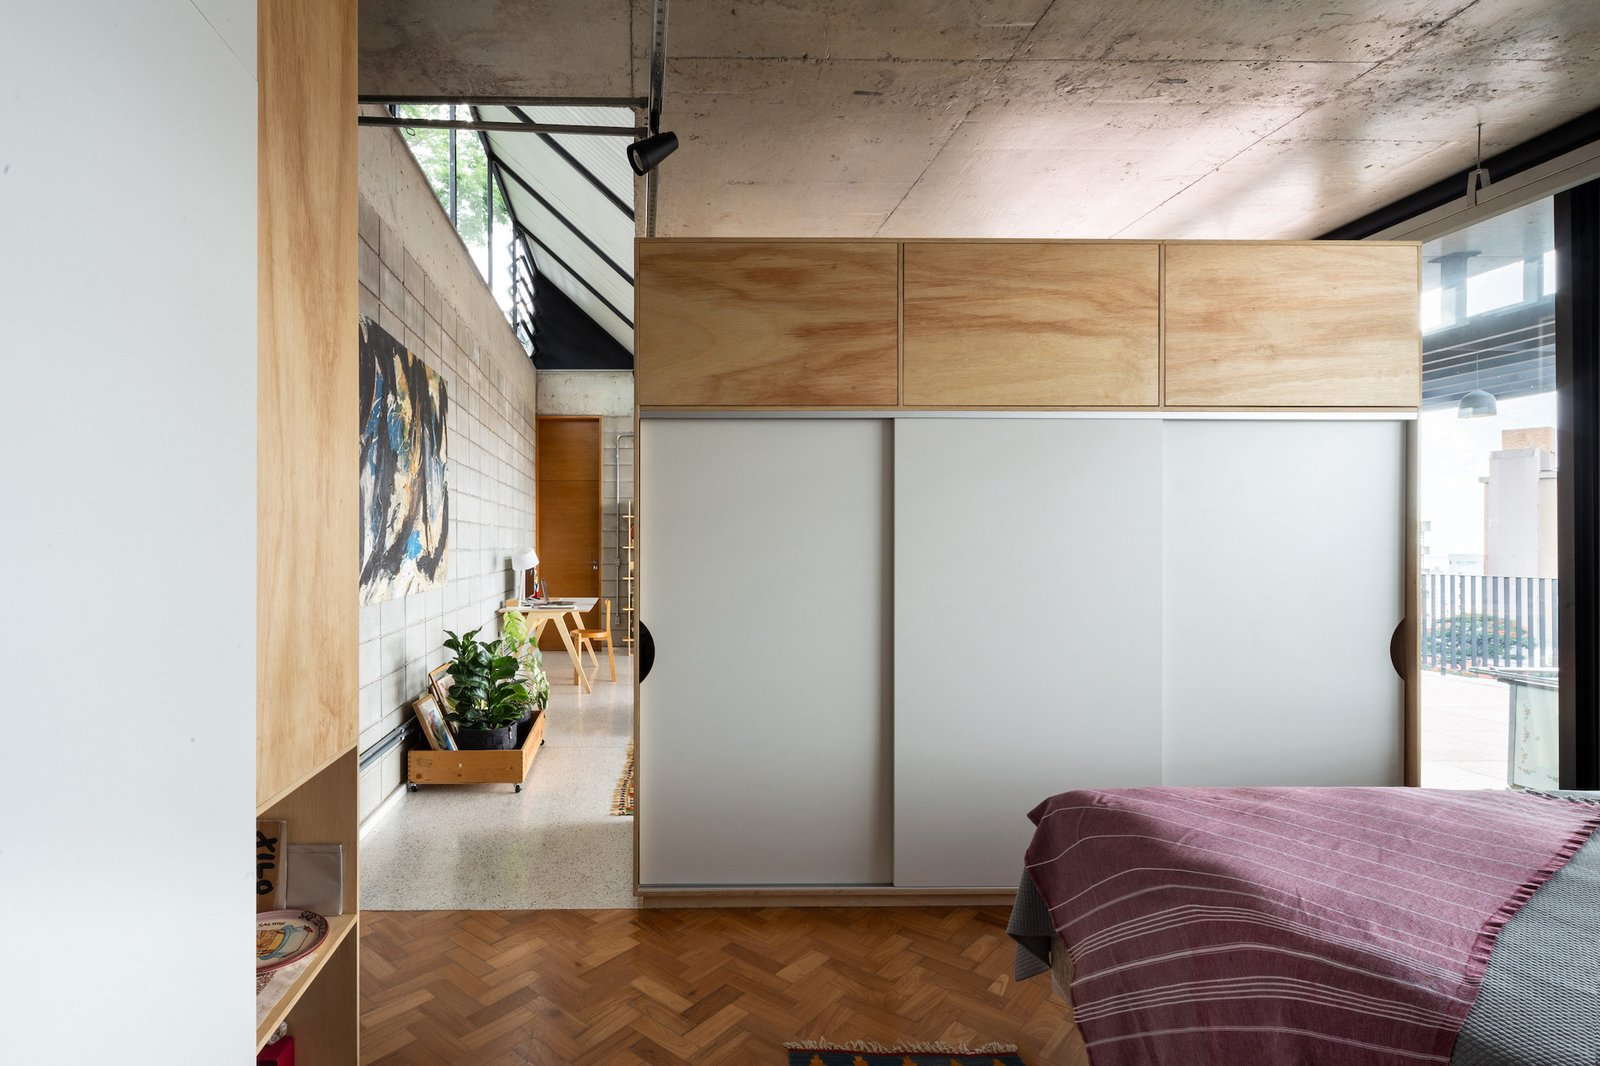 The view from the bedroom into the living space. The double-sided joinery unit features a wardrobe and storage space.